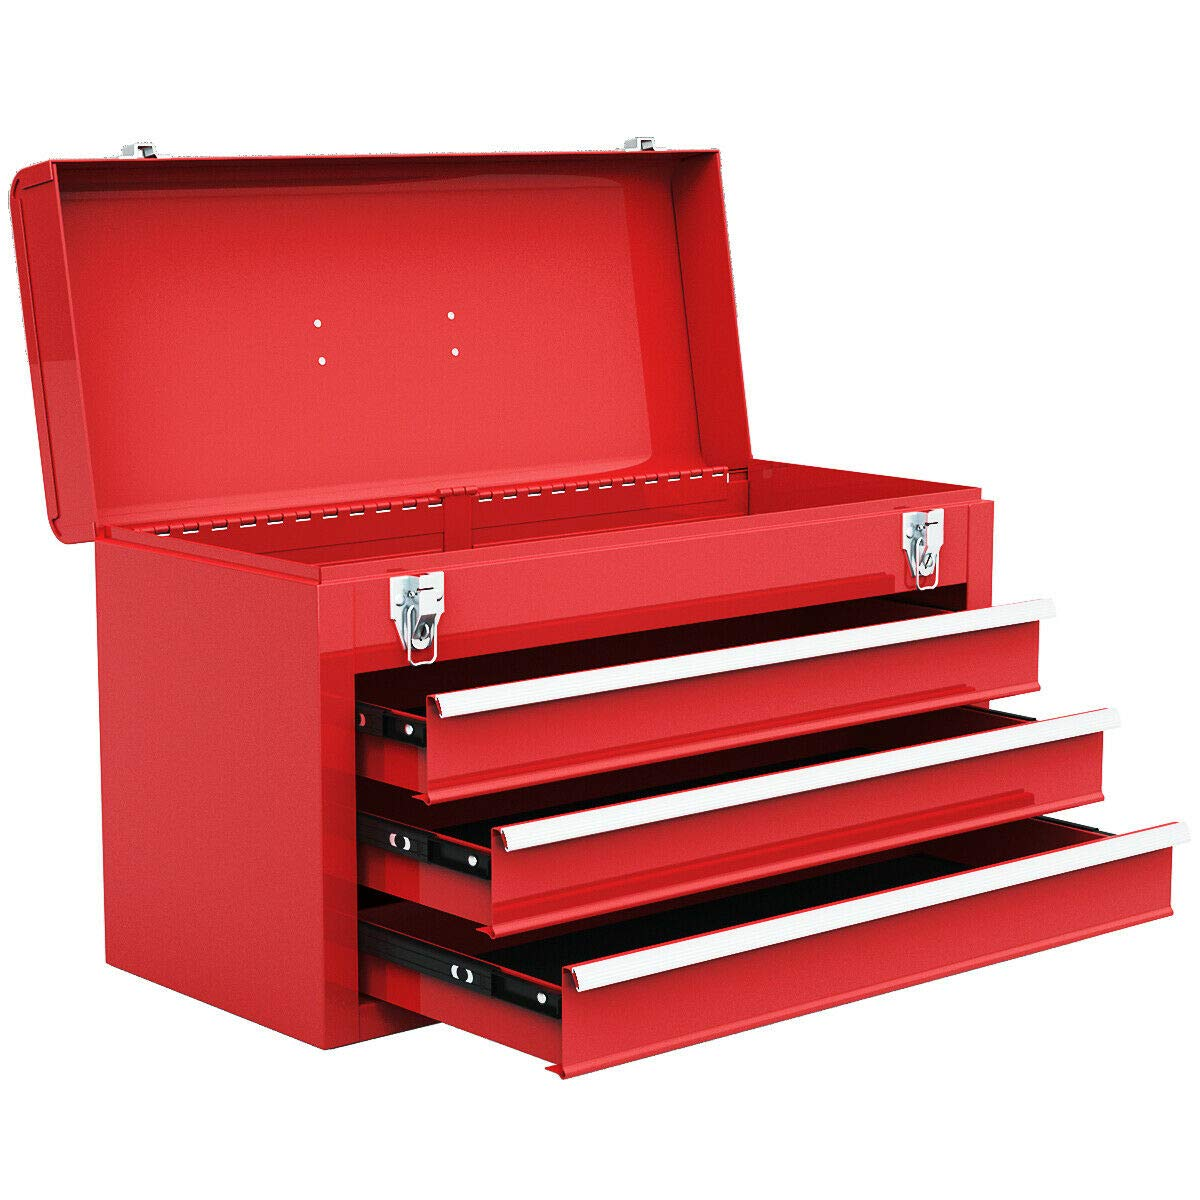 Goplus Tool Chest 20-Inch Portable Tool Box Steel Cabinet w/ 3 Drawers and Top tray, Red by Goplus